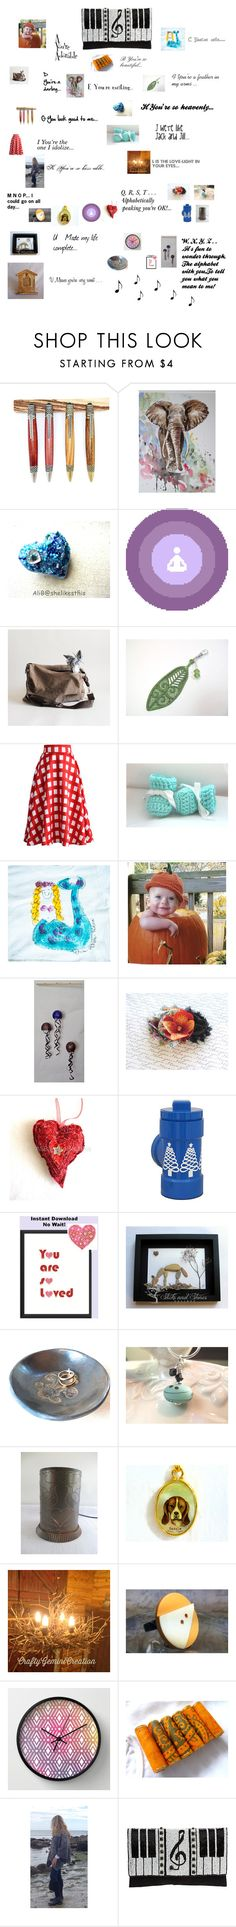 """""""This Is How You Sing Your Way To Holiday Shopping!"""" by pippinpost ❤ liked on Polyvore featuring Aquarelle, Chicwish, Mary Frances Accessories, etsy, gifts and integrityTT"""